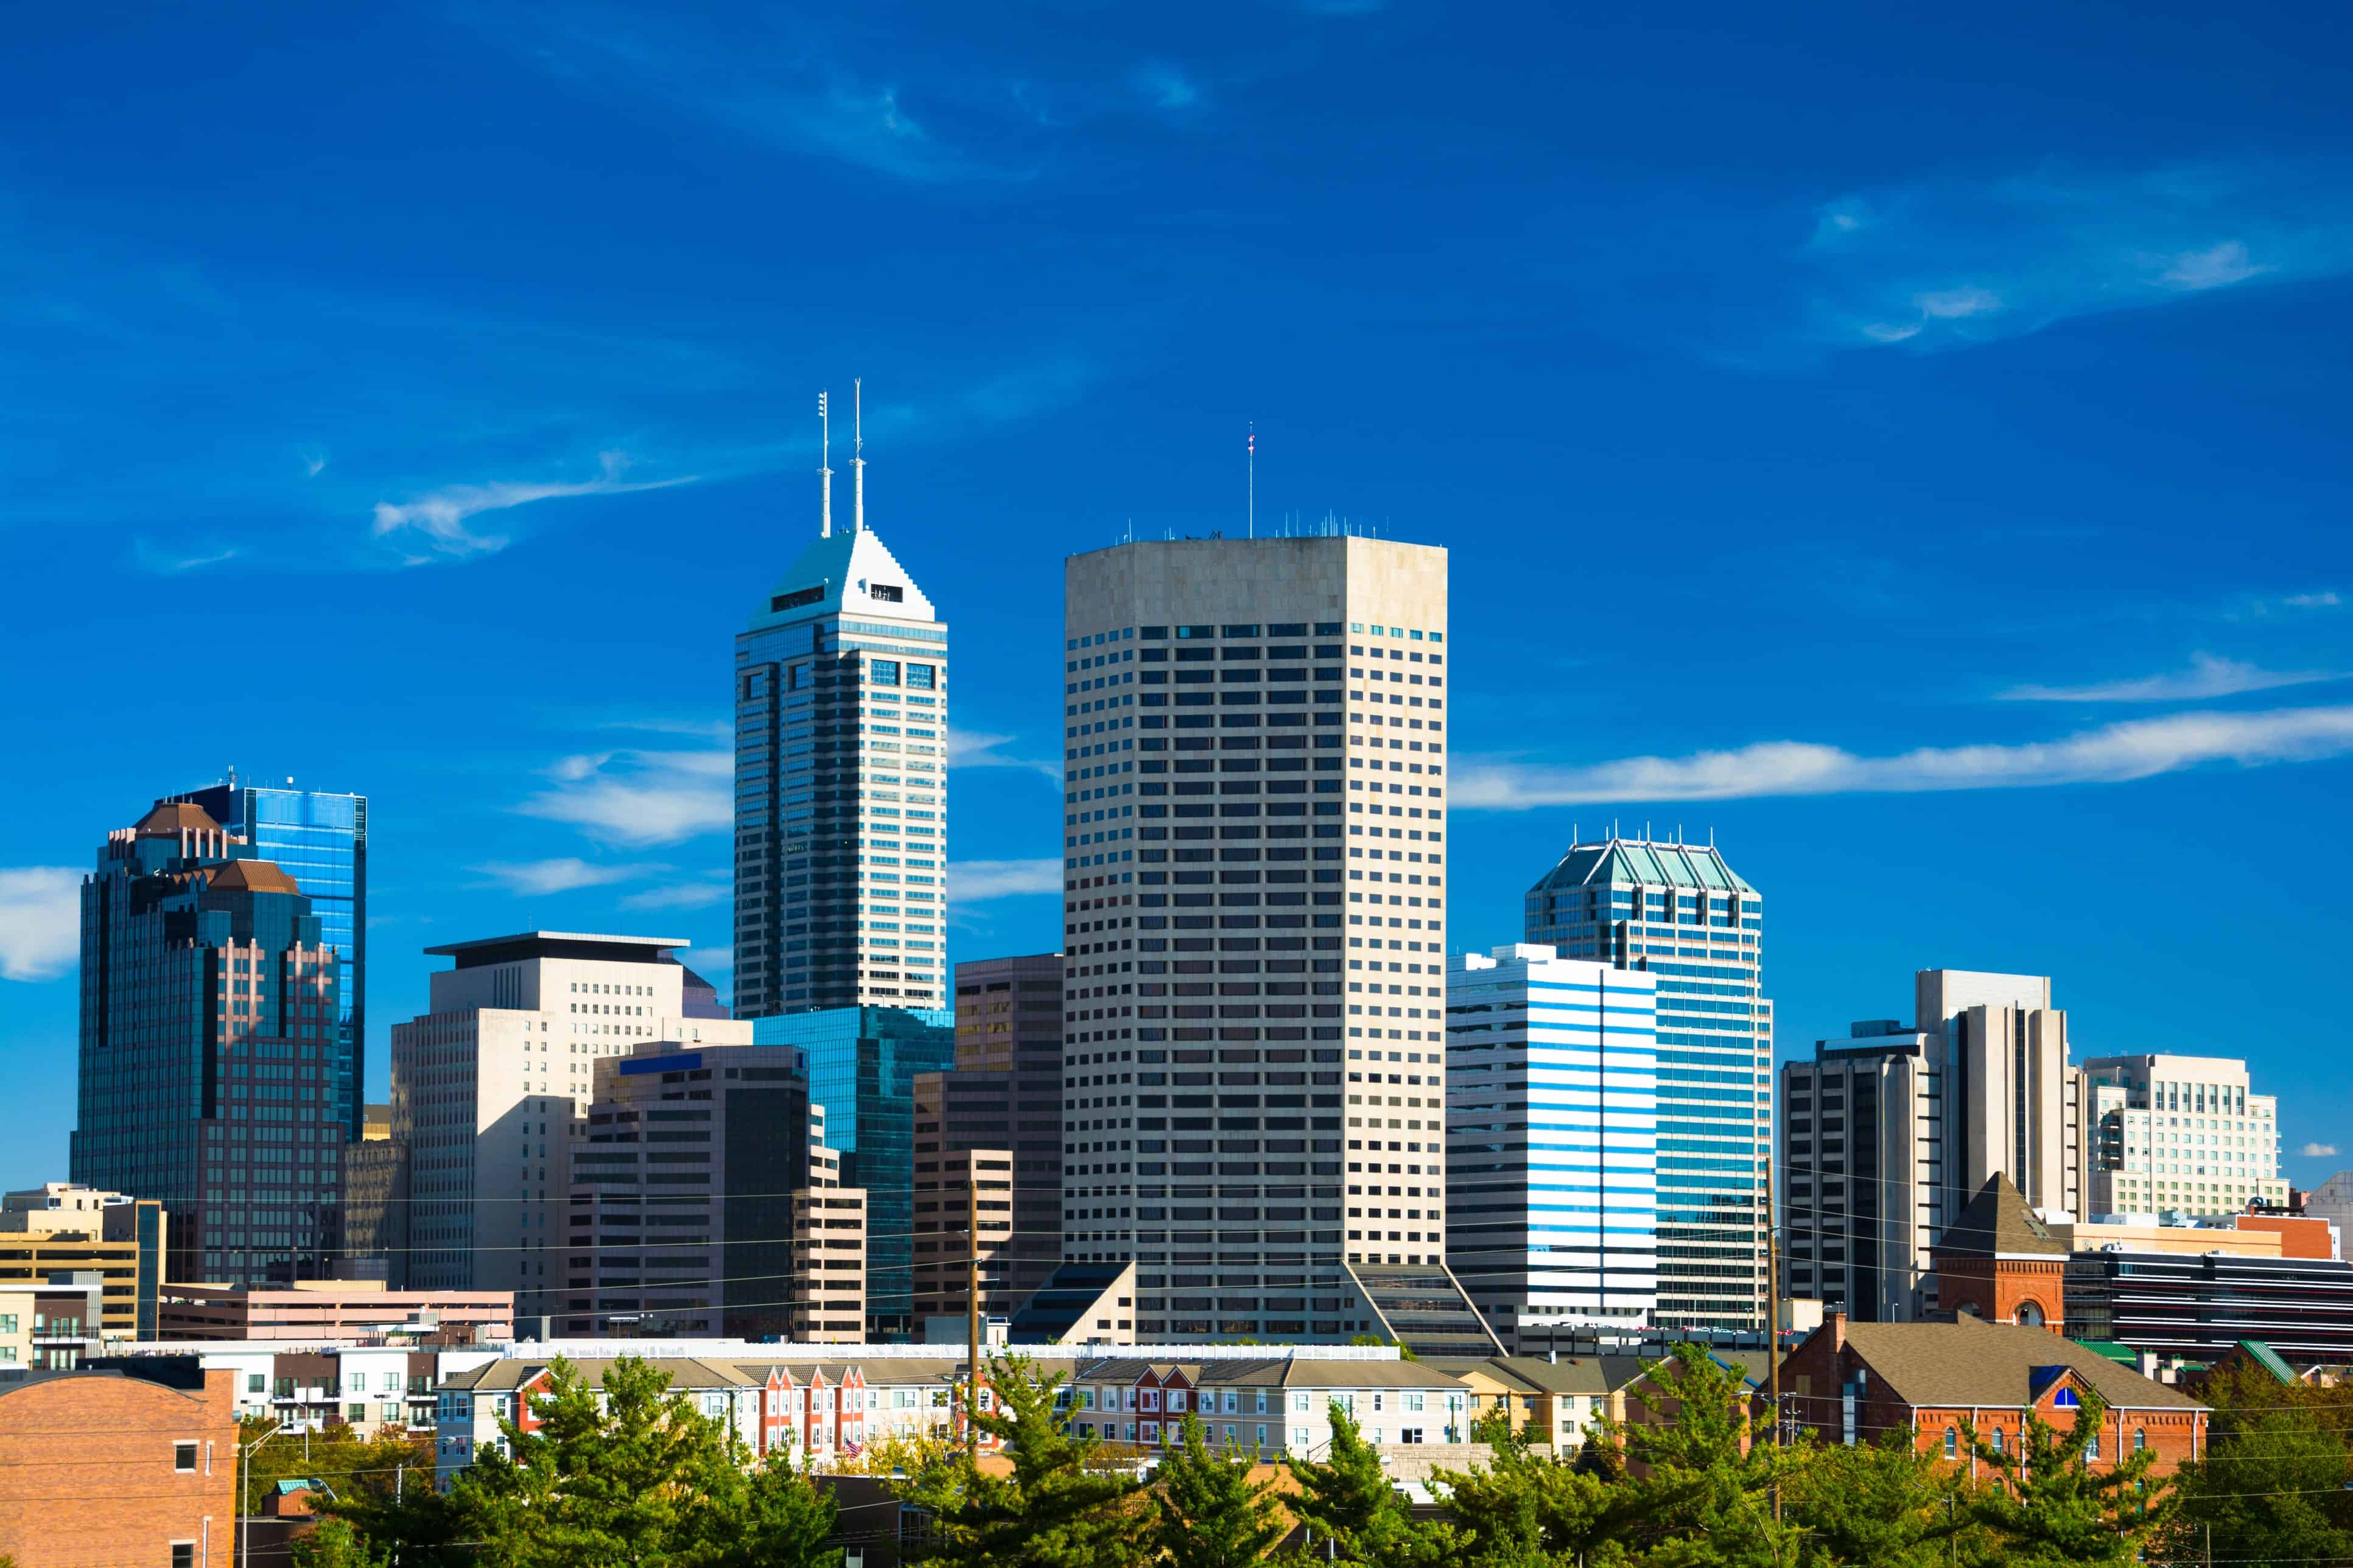 Image of Indianapolis Skyline with text